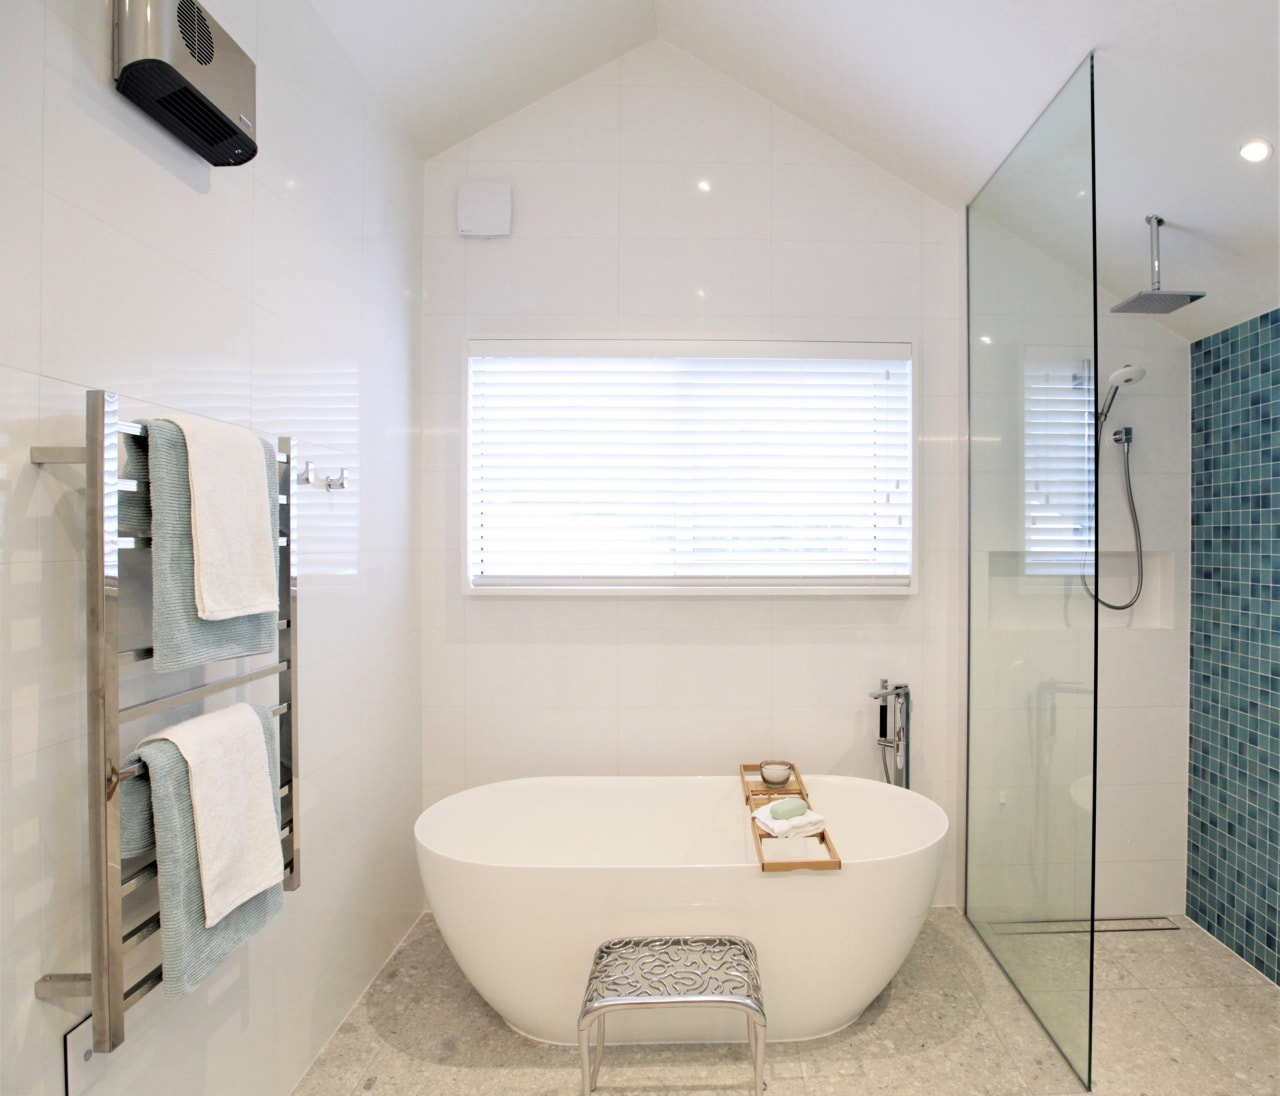 The freestanding tub is straight ahead as you